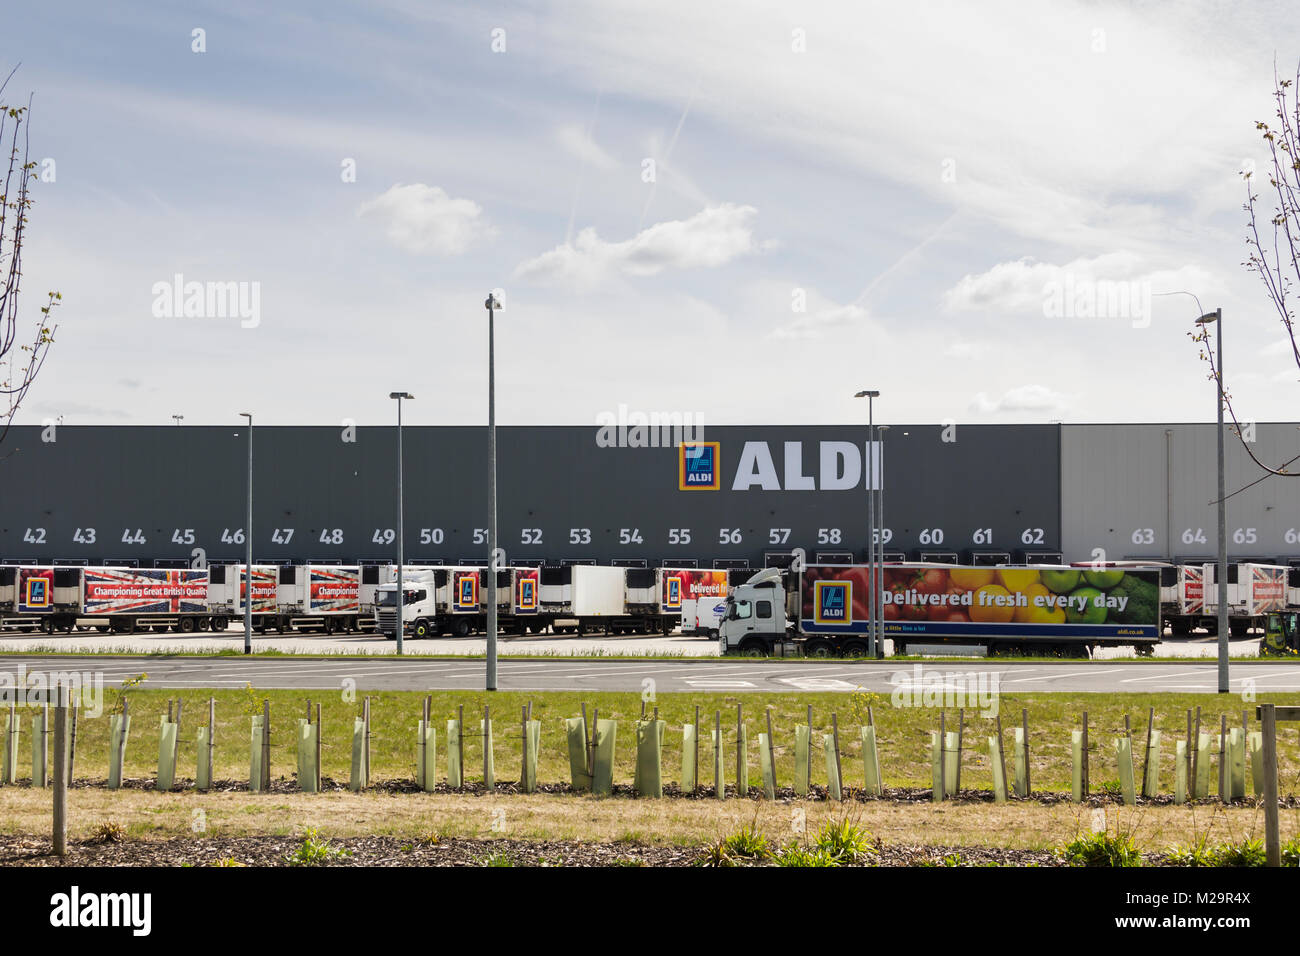 Aldi branded articulated lorries outside the new Aldi Distribution warehouse and retail training centre at Logistics - Stock Image